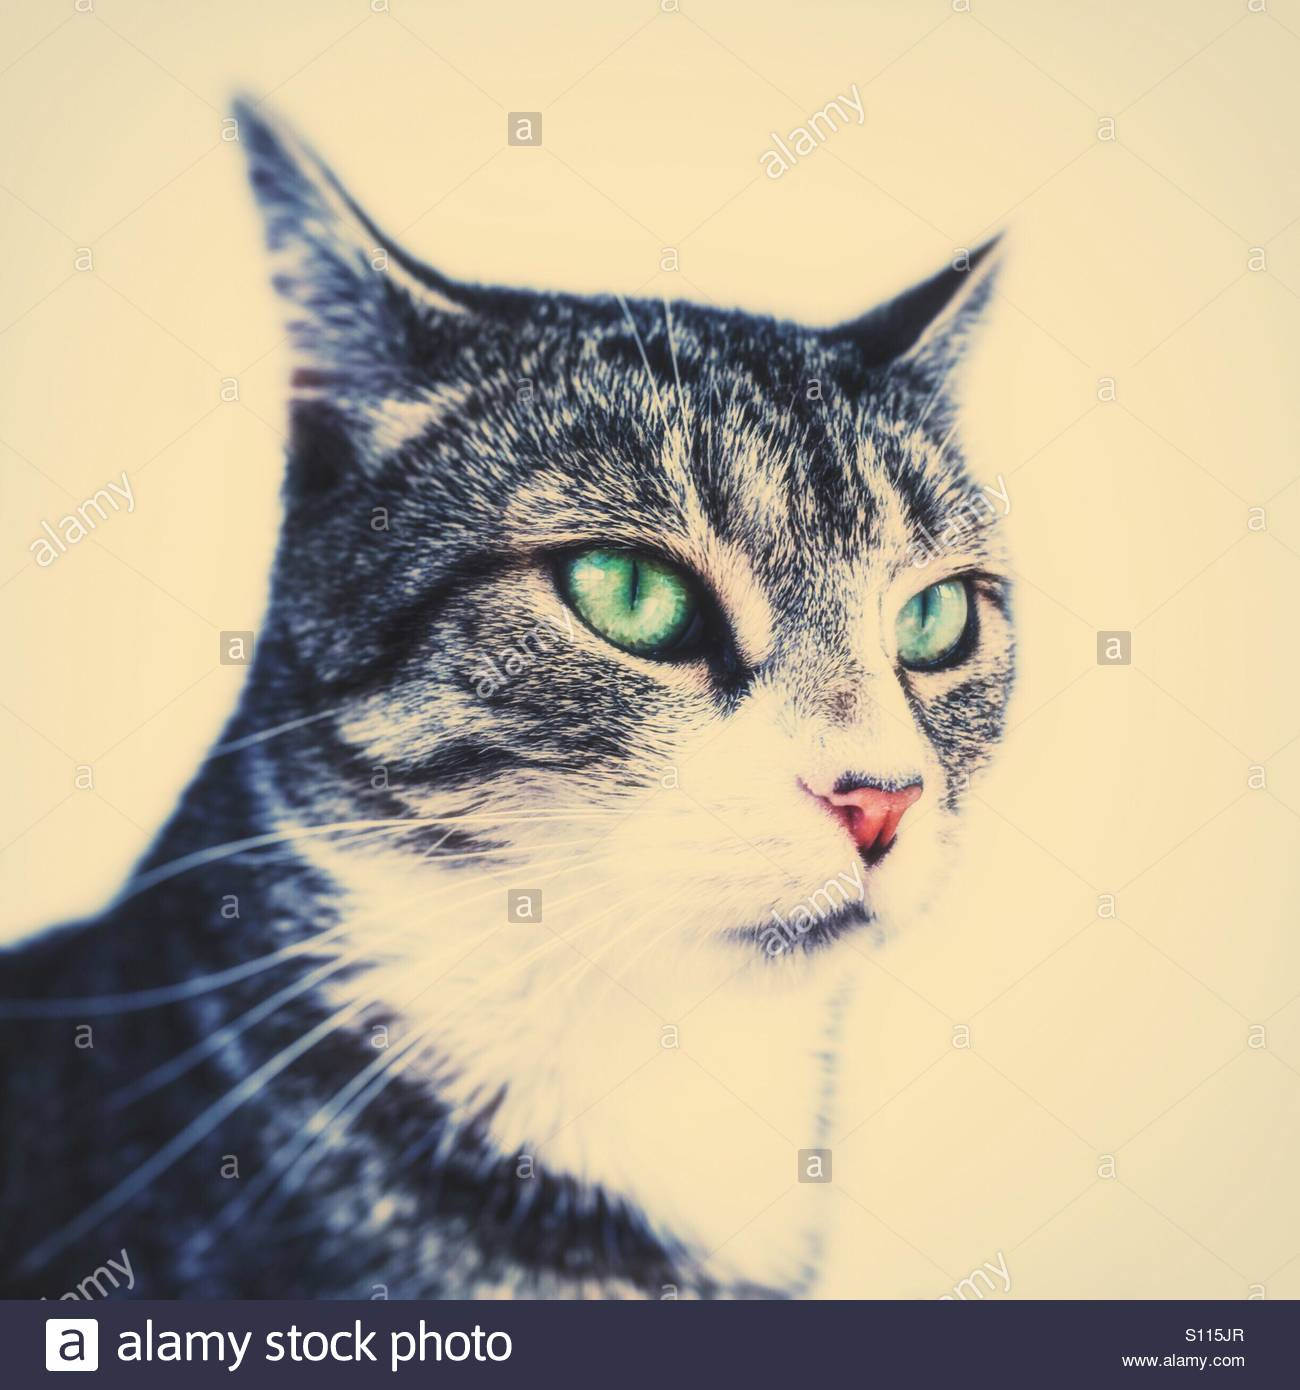 Cat Portrait with 'Pop Art' edit - Stock Image